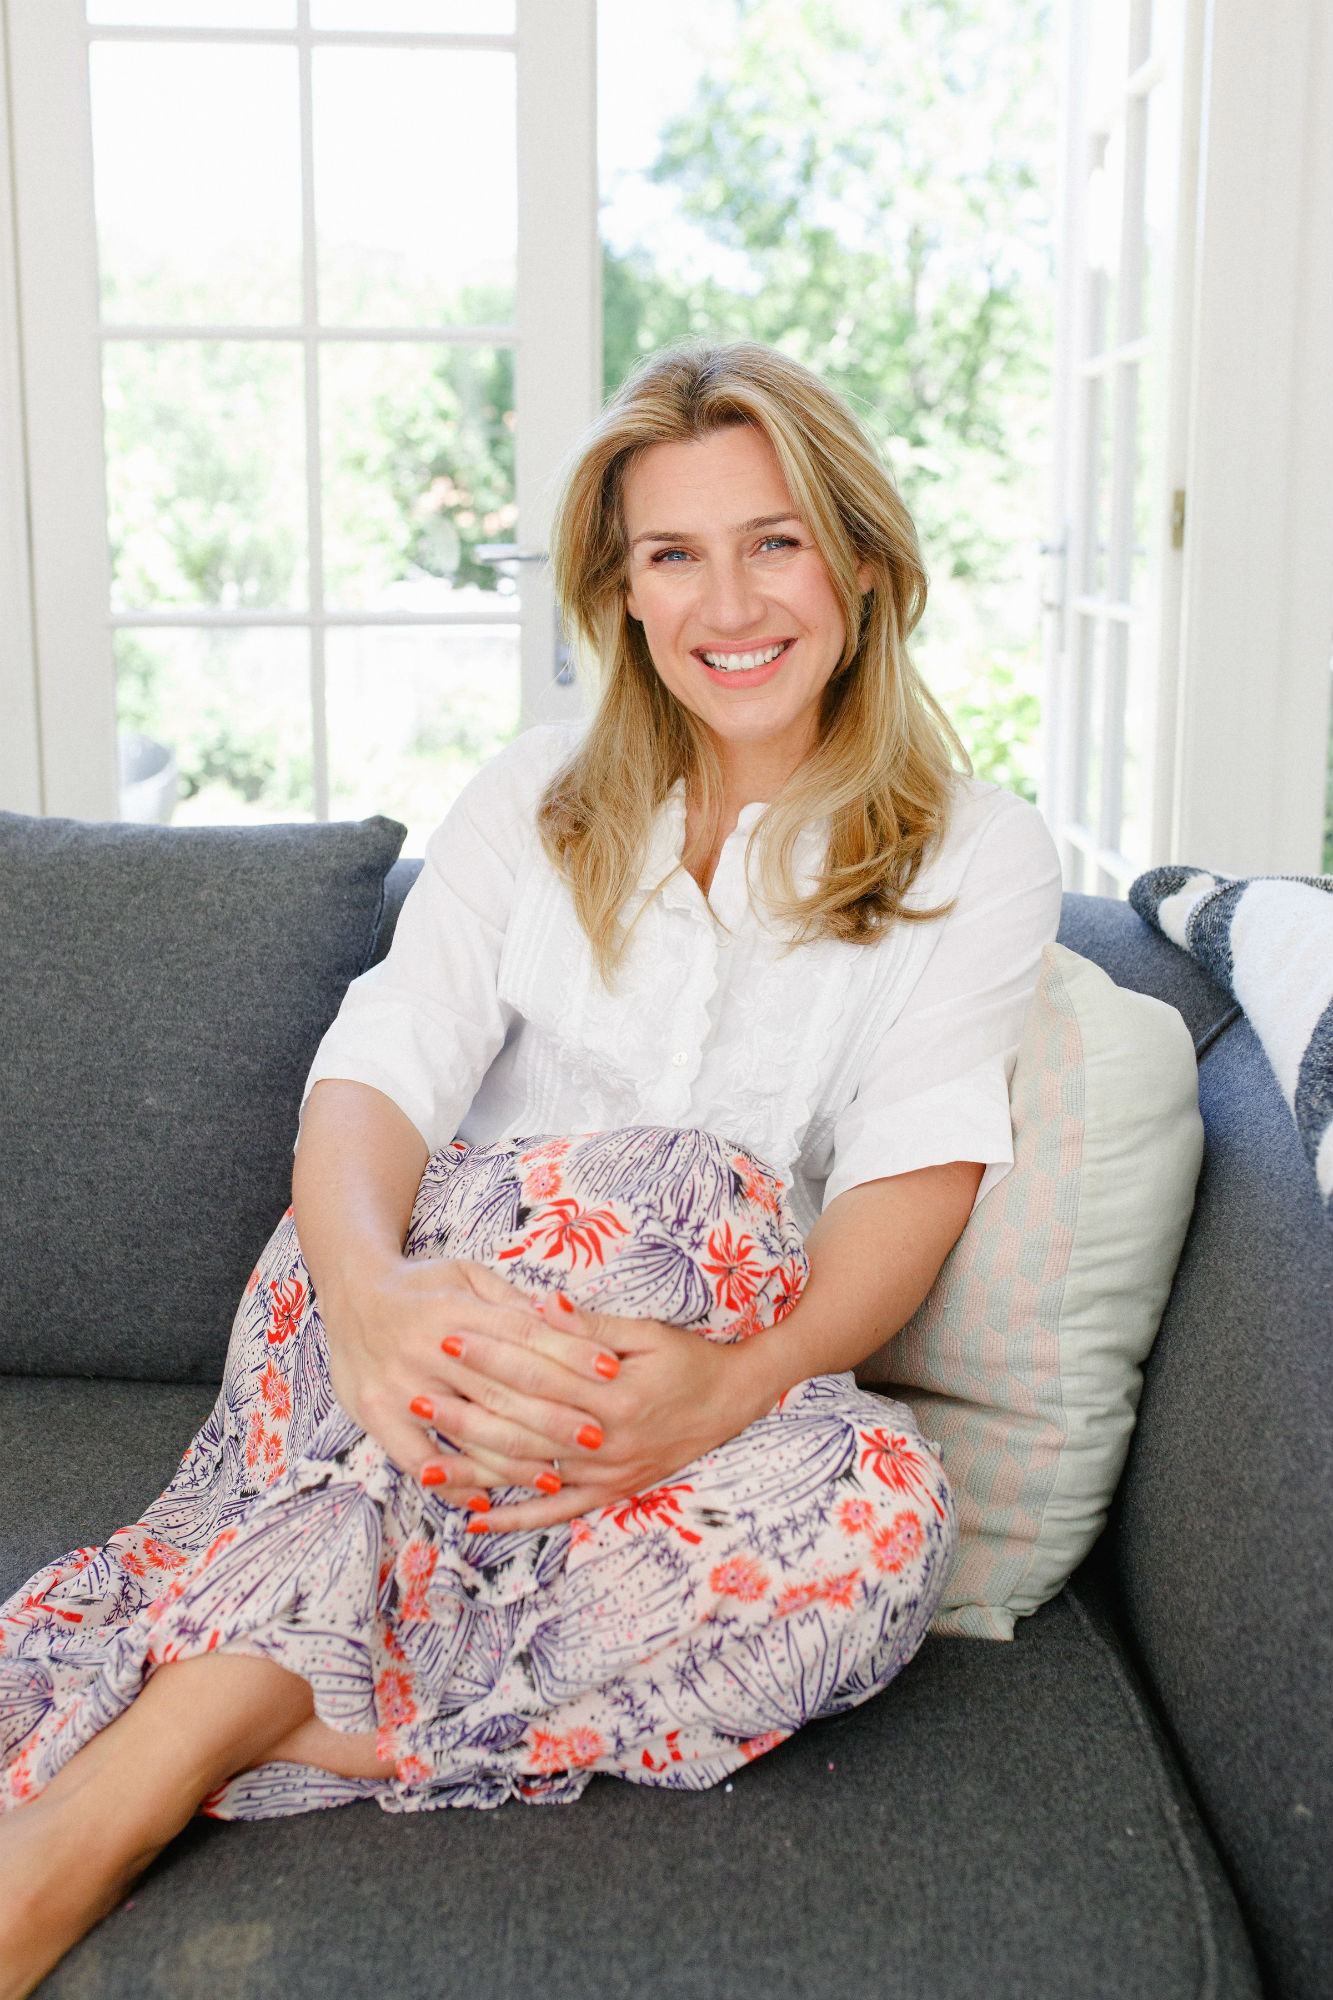 Nicola Elliott, the Founder of Neom Organics, on what she still wants to achieve with her business